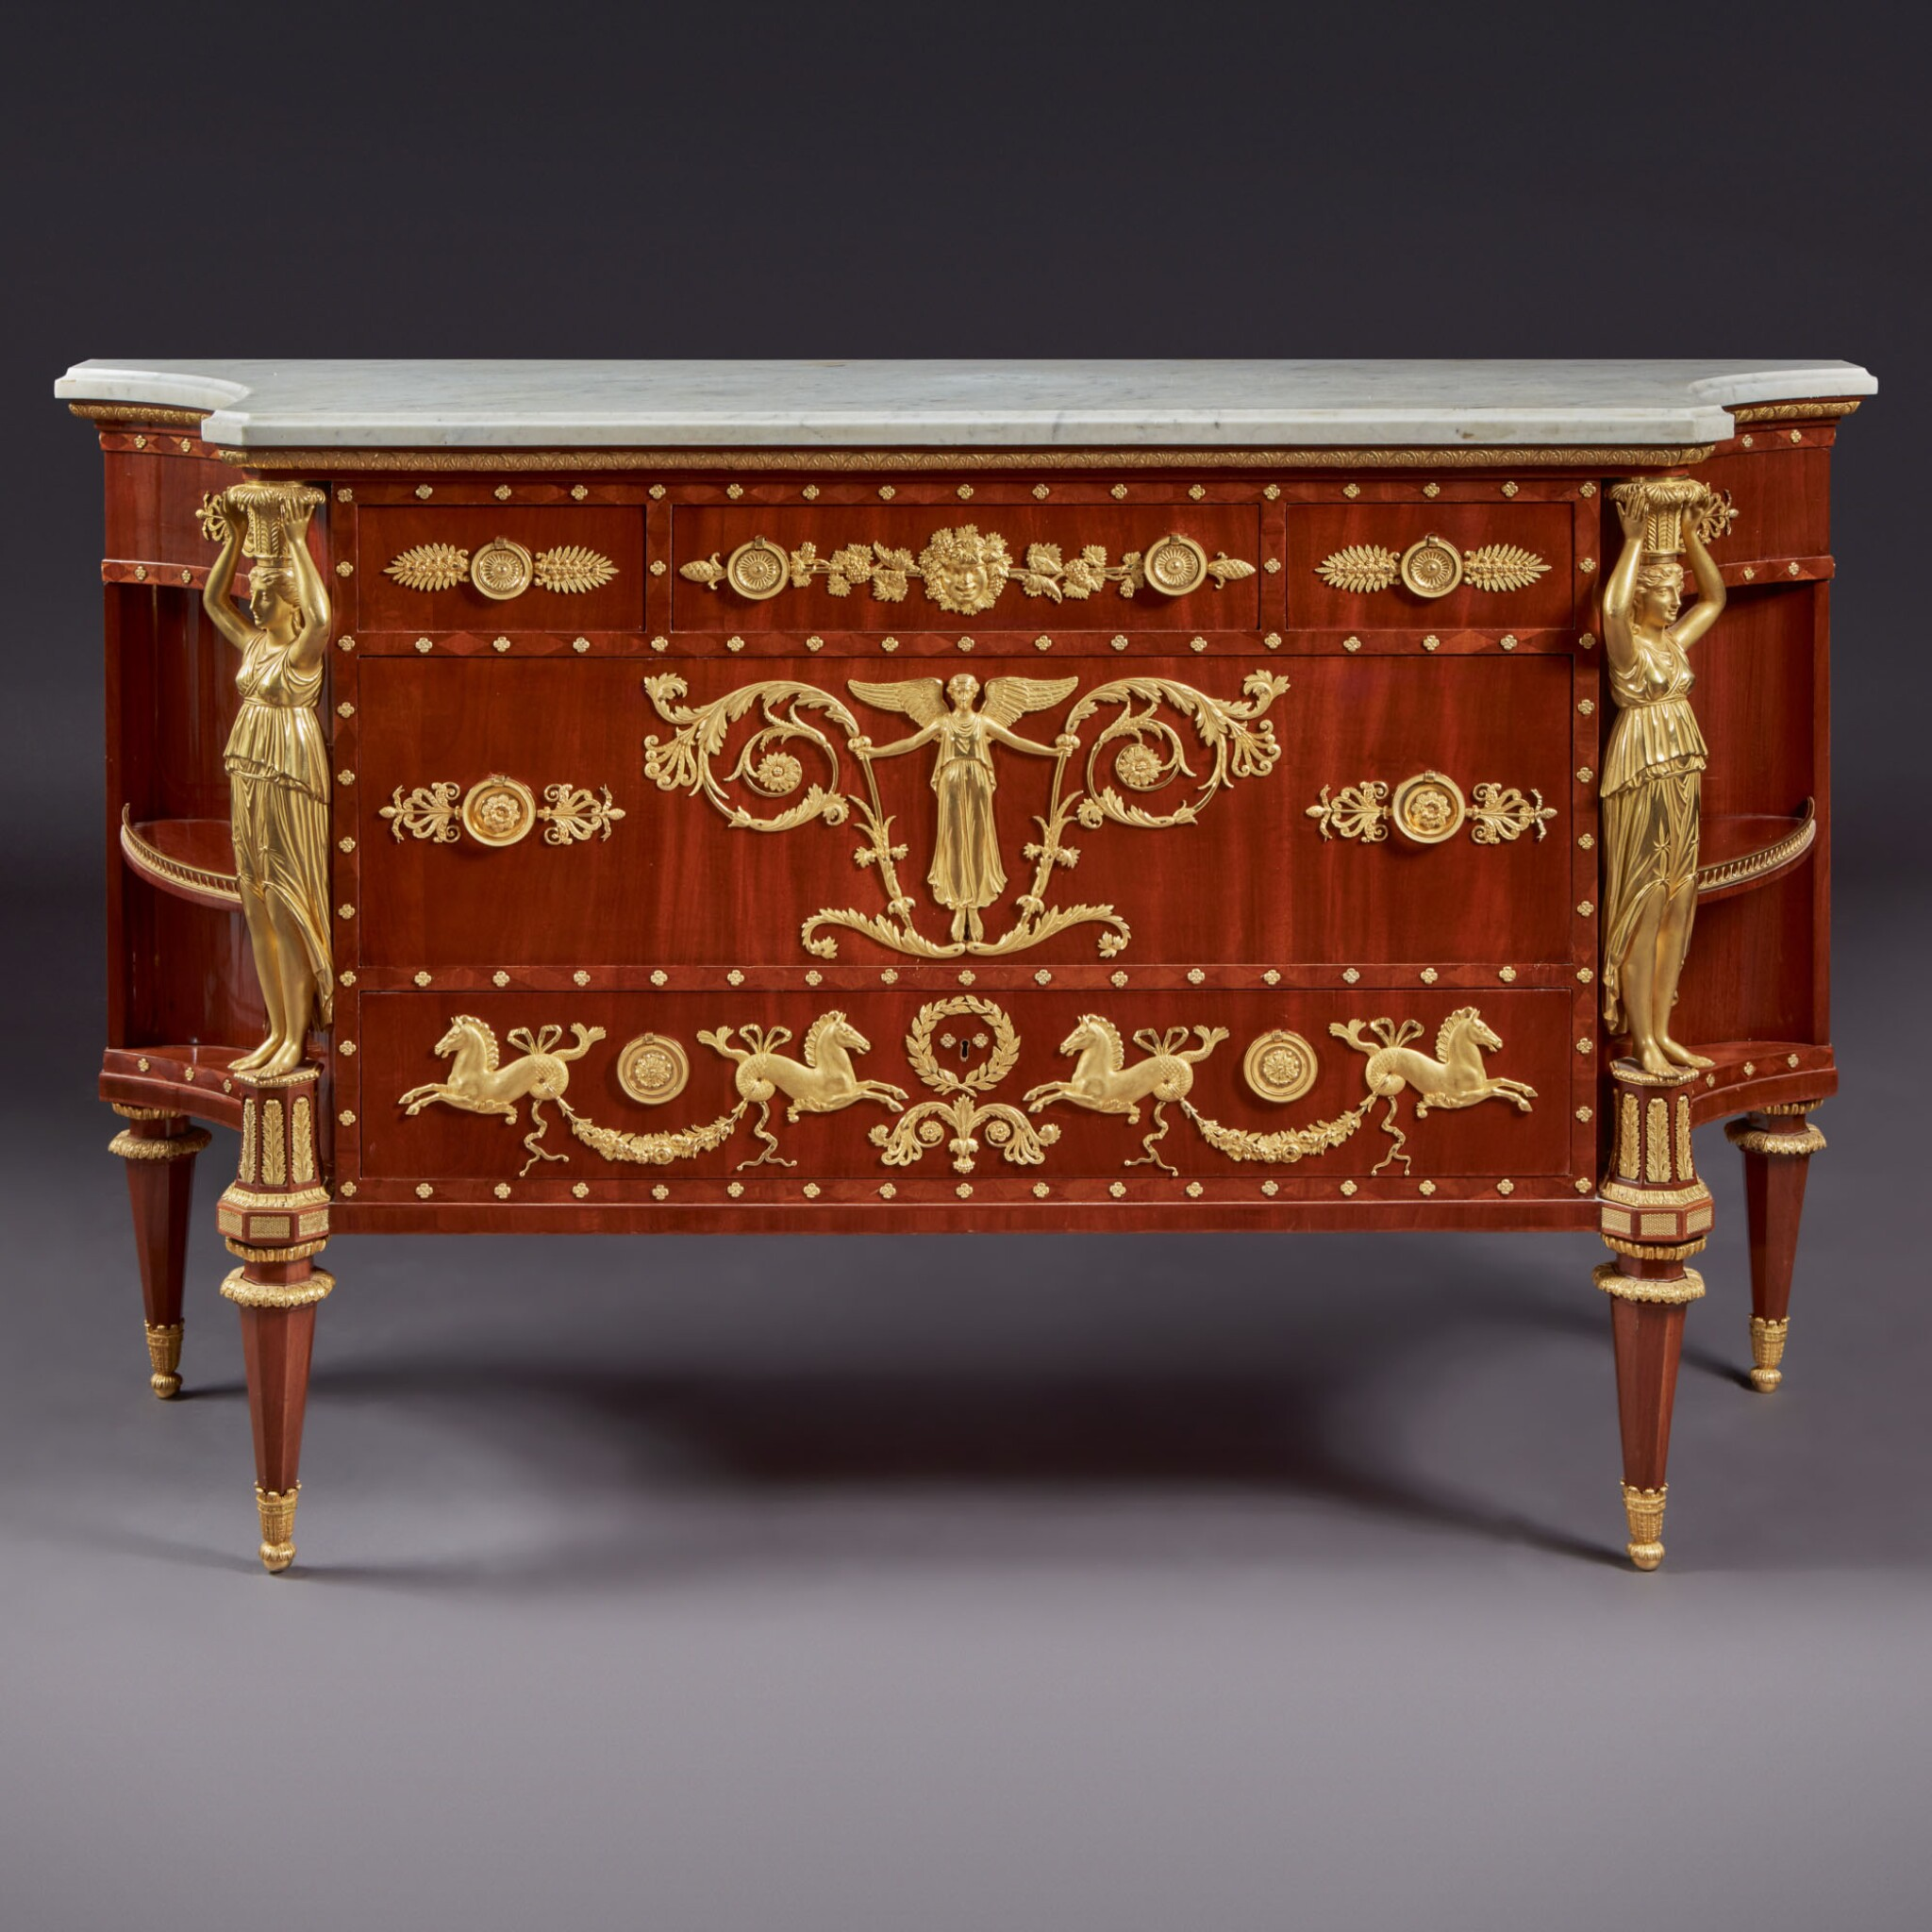 View full screen - View 1 of Lot 127. A LATE LOUIS XVI GILT BRONZE-MOUNTED MAHOGANY COMMODE, AFTER A DESIGN BY PERCIER AND FONTAINE, CIRCA 1790-95.